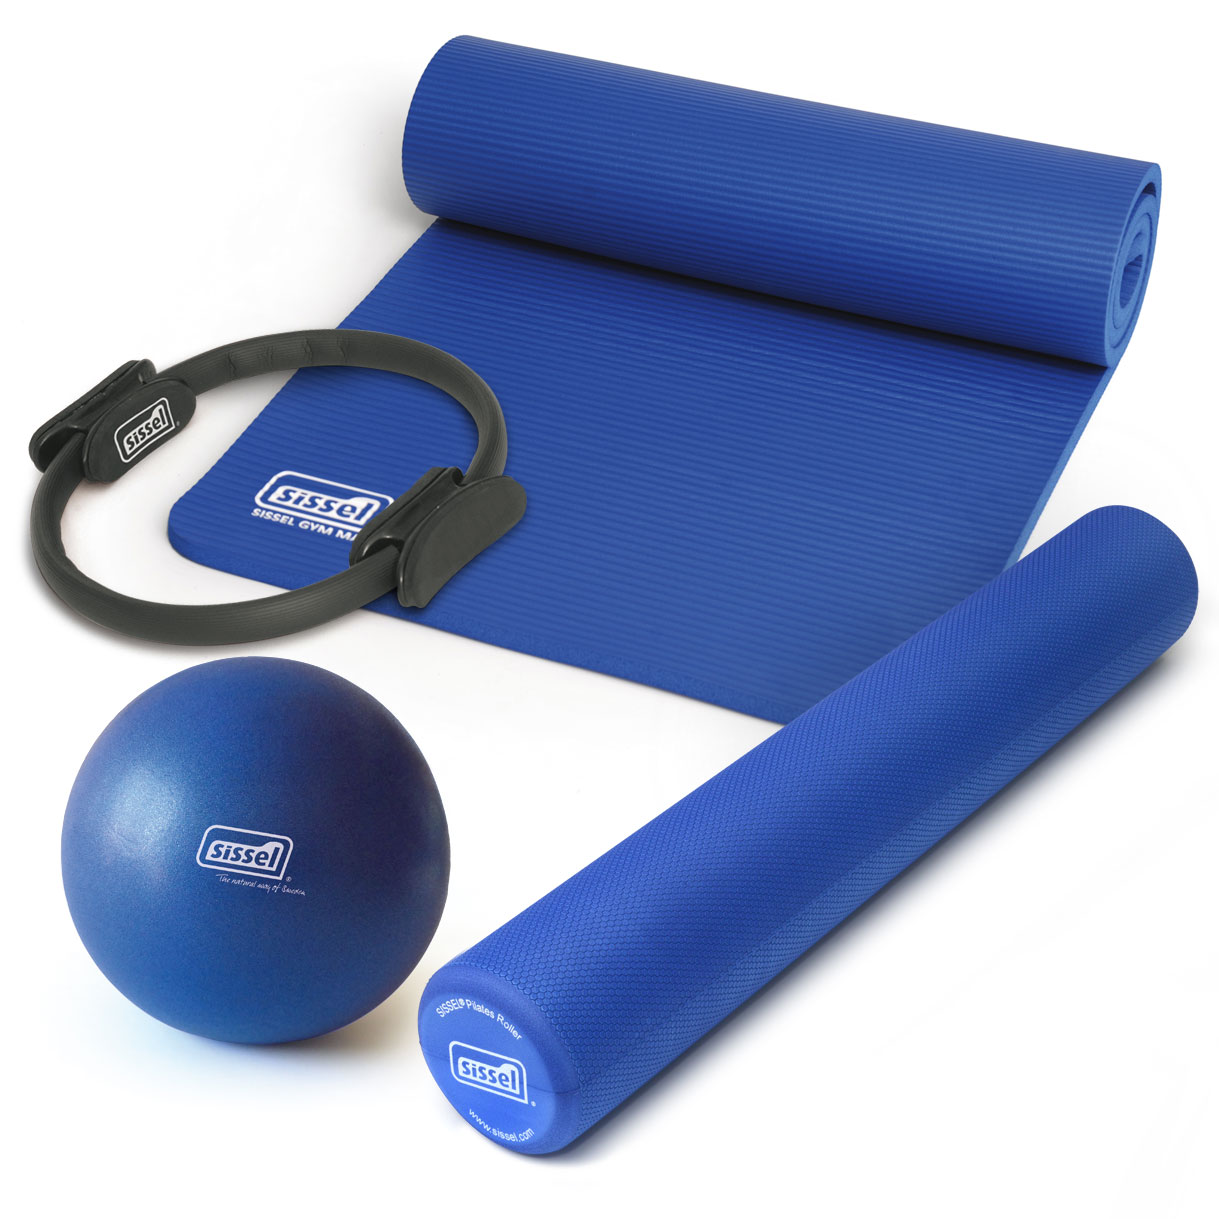 KIT PILATES CASA n°1: Circle, Soft Ball, Rullo e Materassino